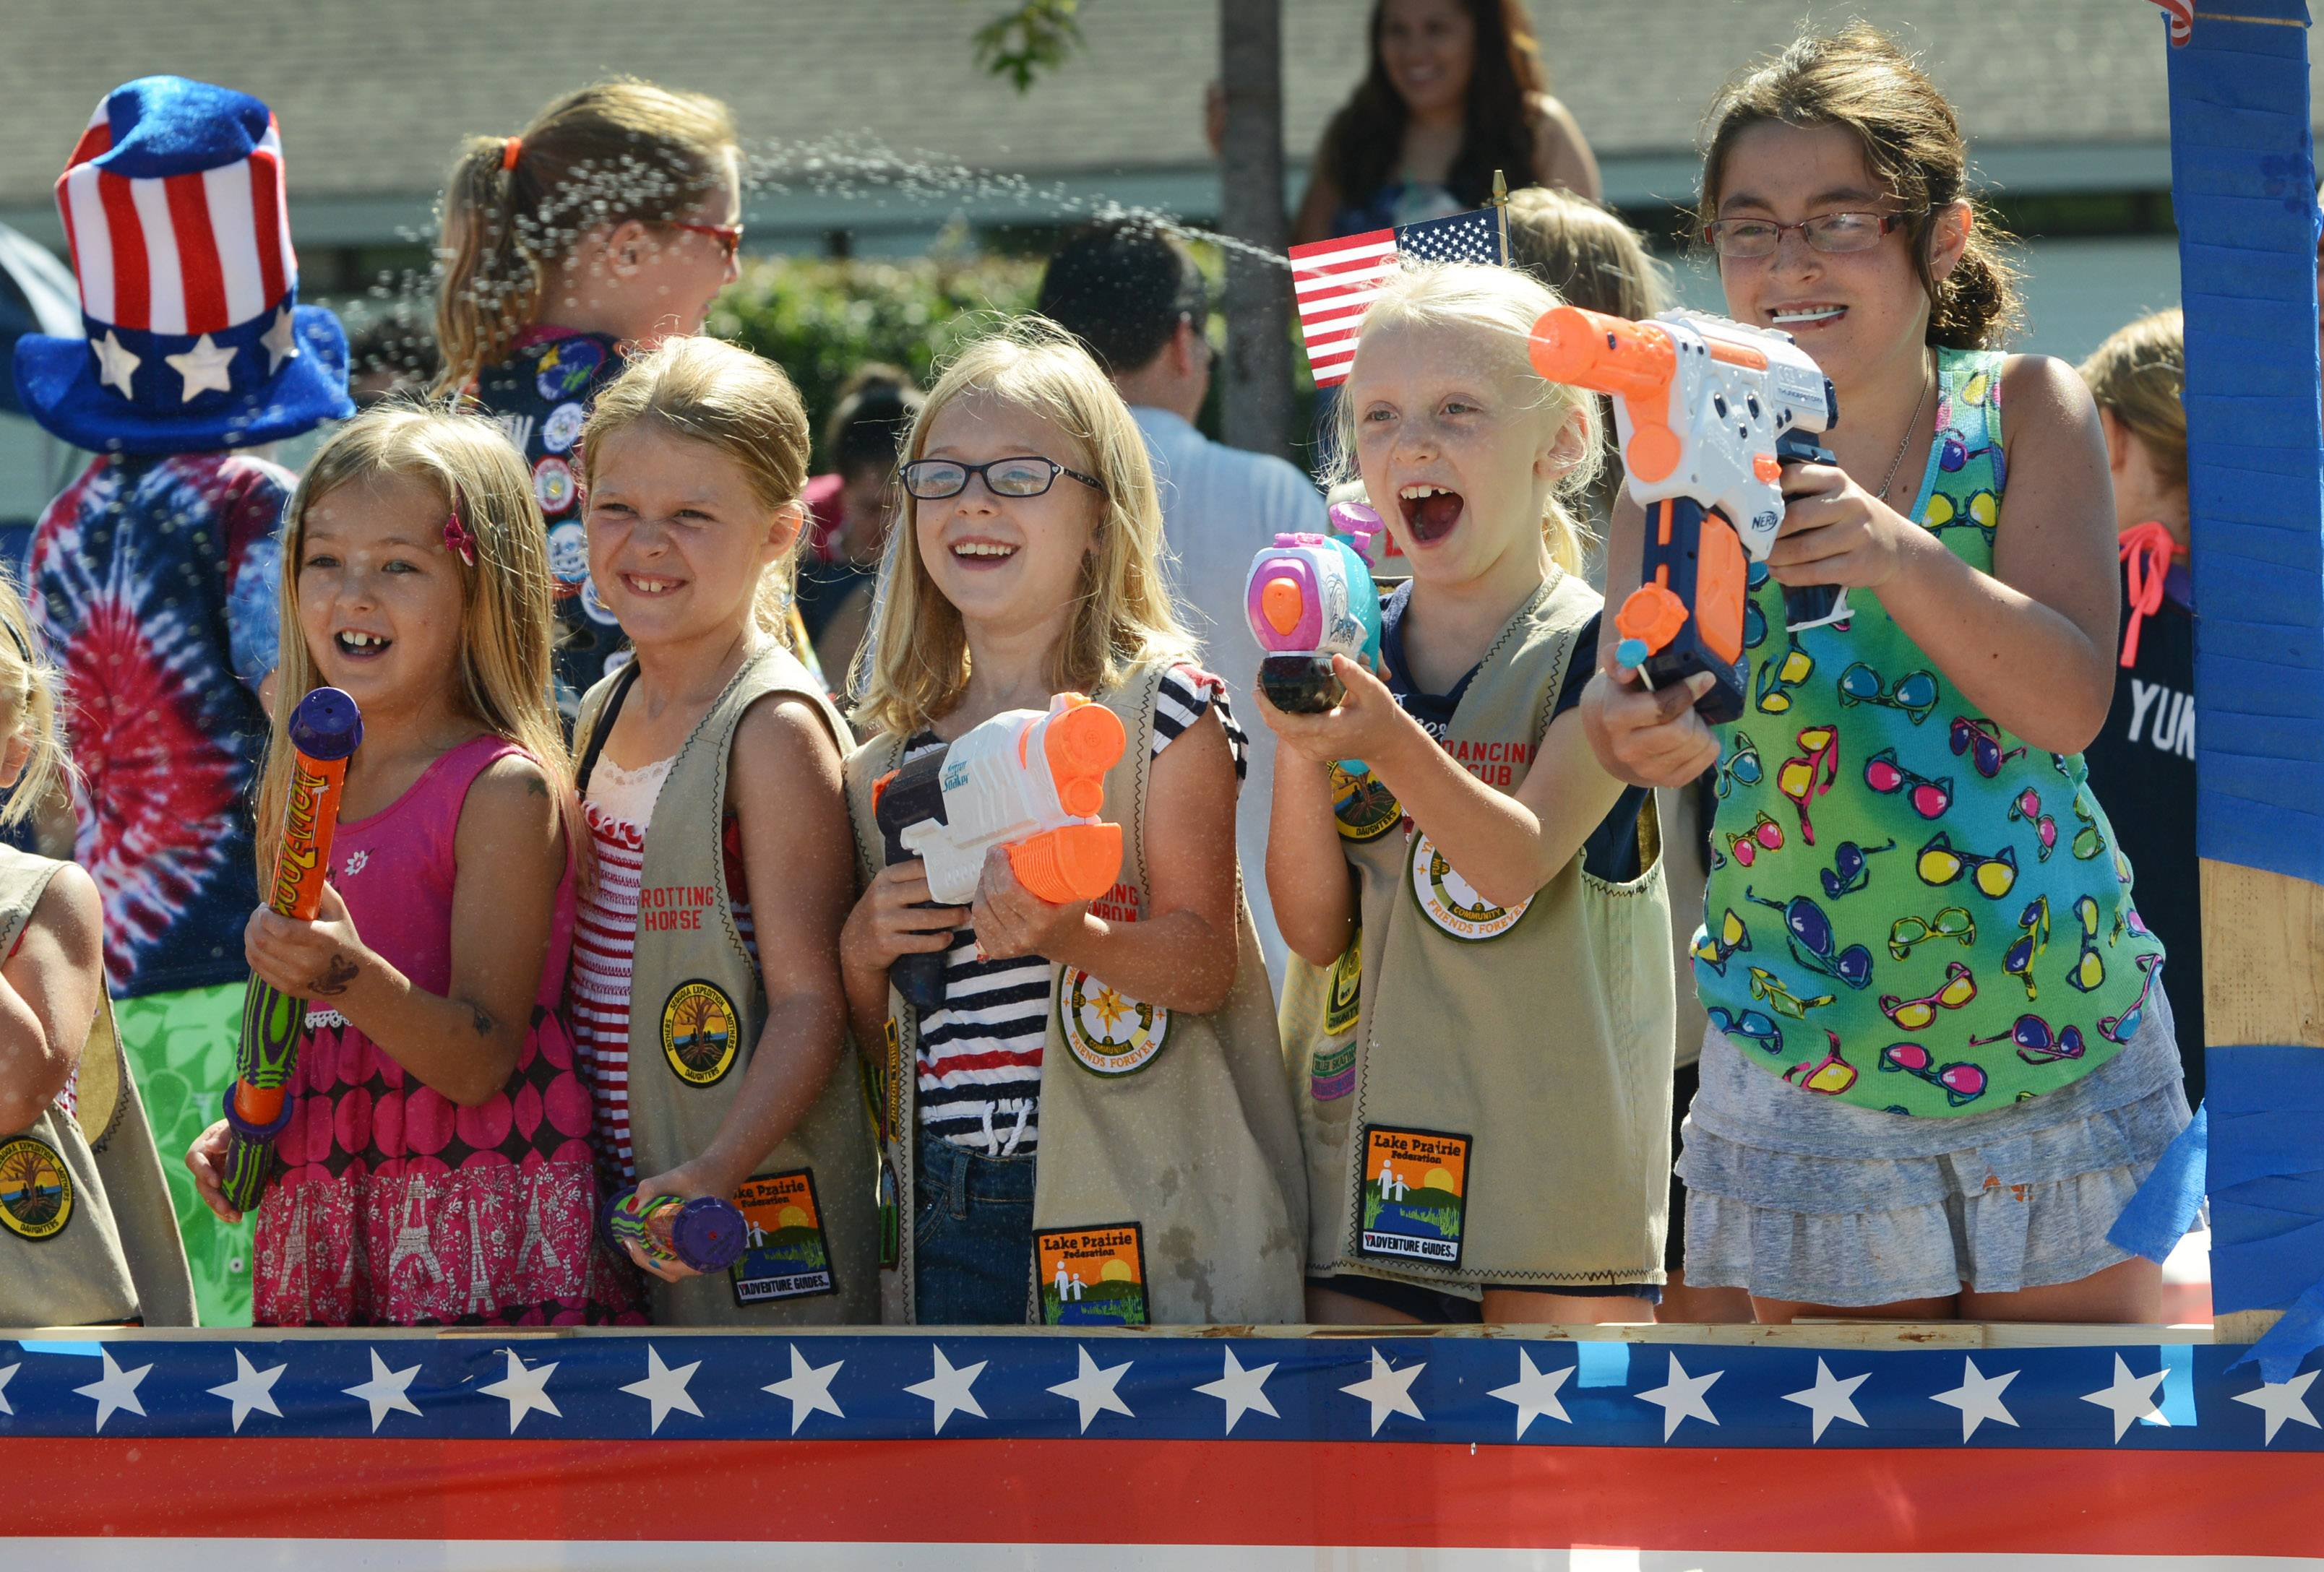 Members of the Lake Prairie Federation YMCA Guides & Princesses have fun spraying the crowd during Friday's Fourth of July parade in Vernon Hills.